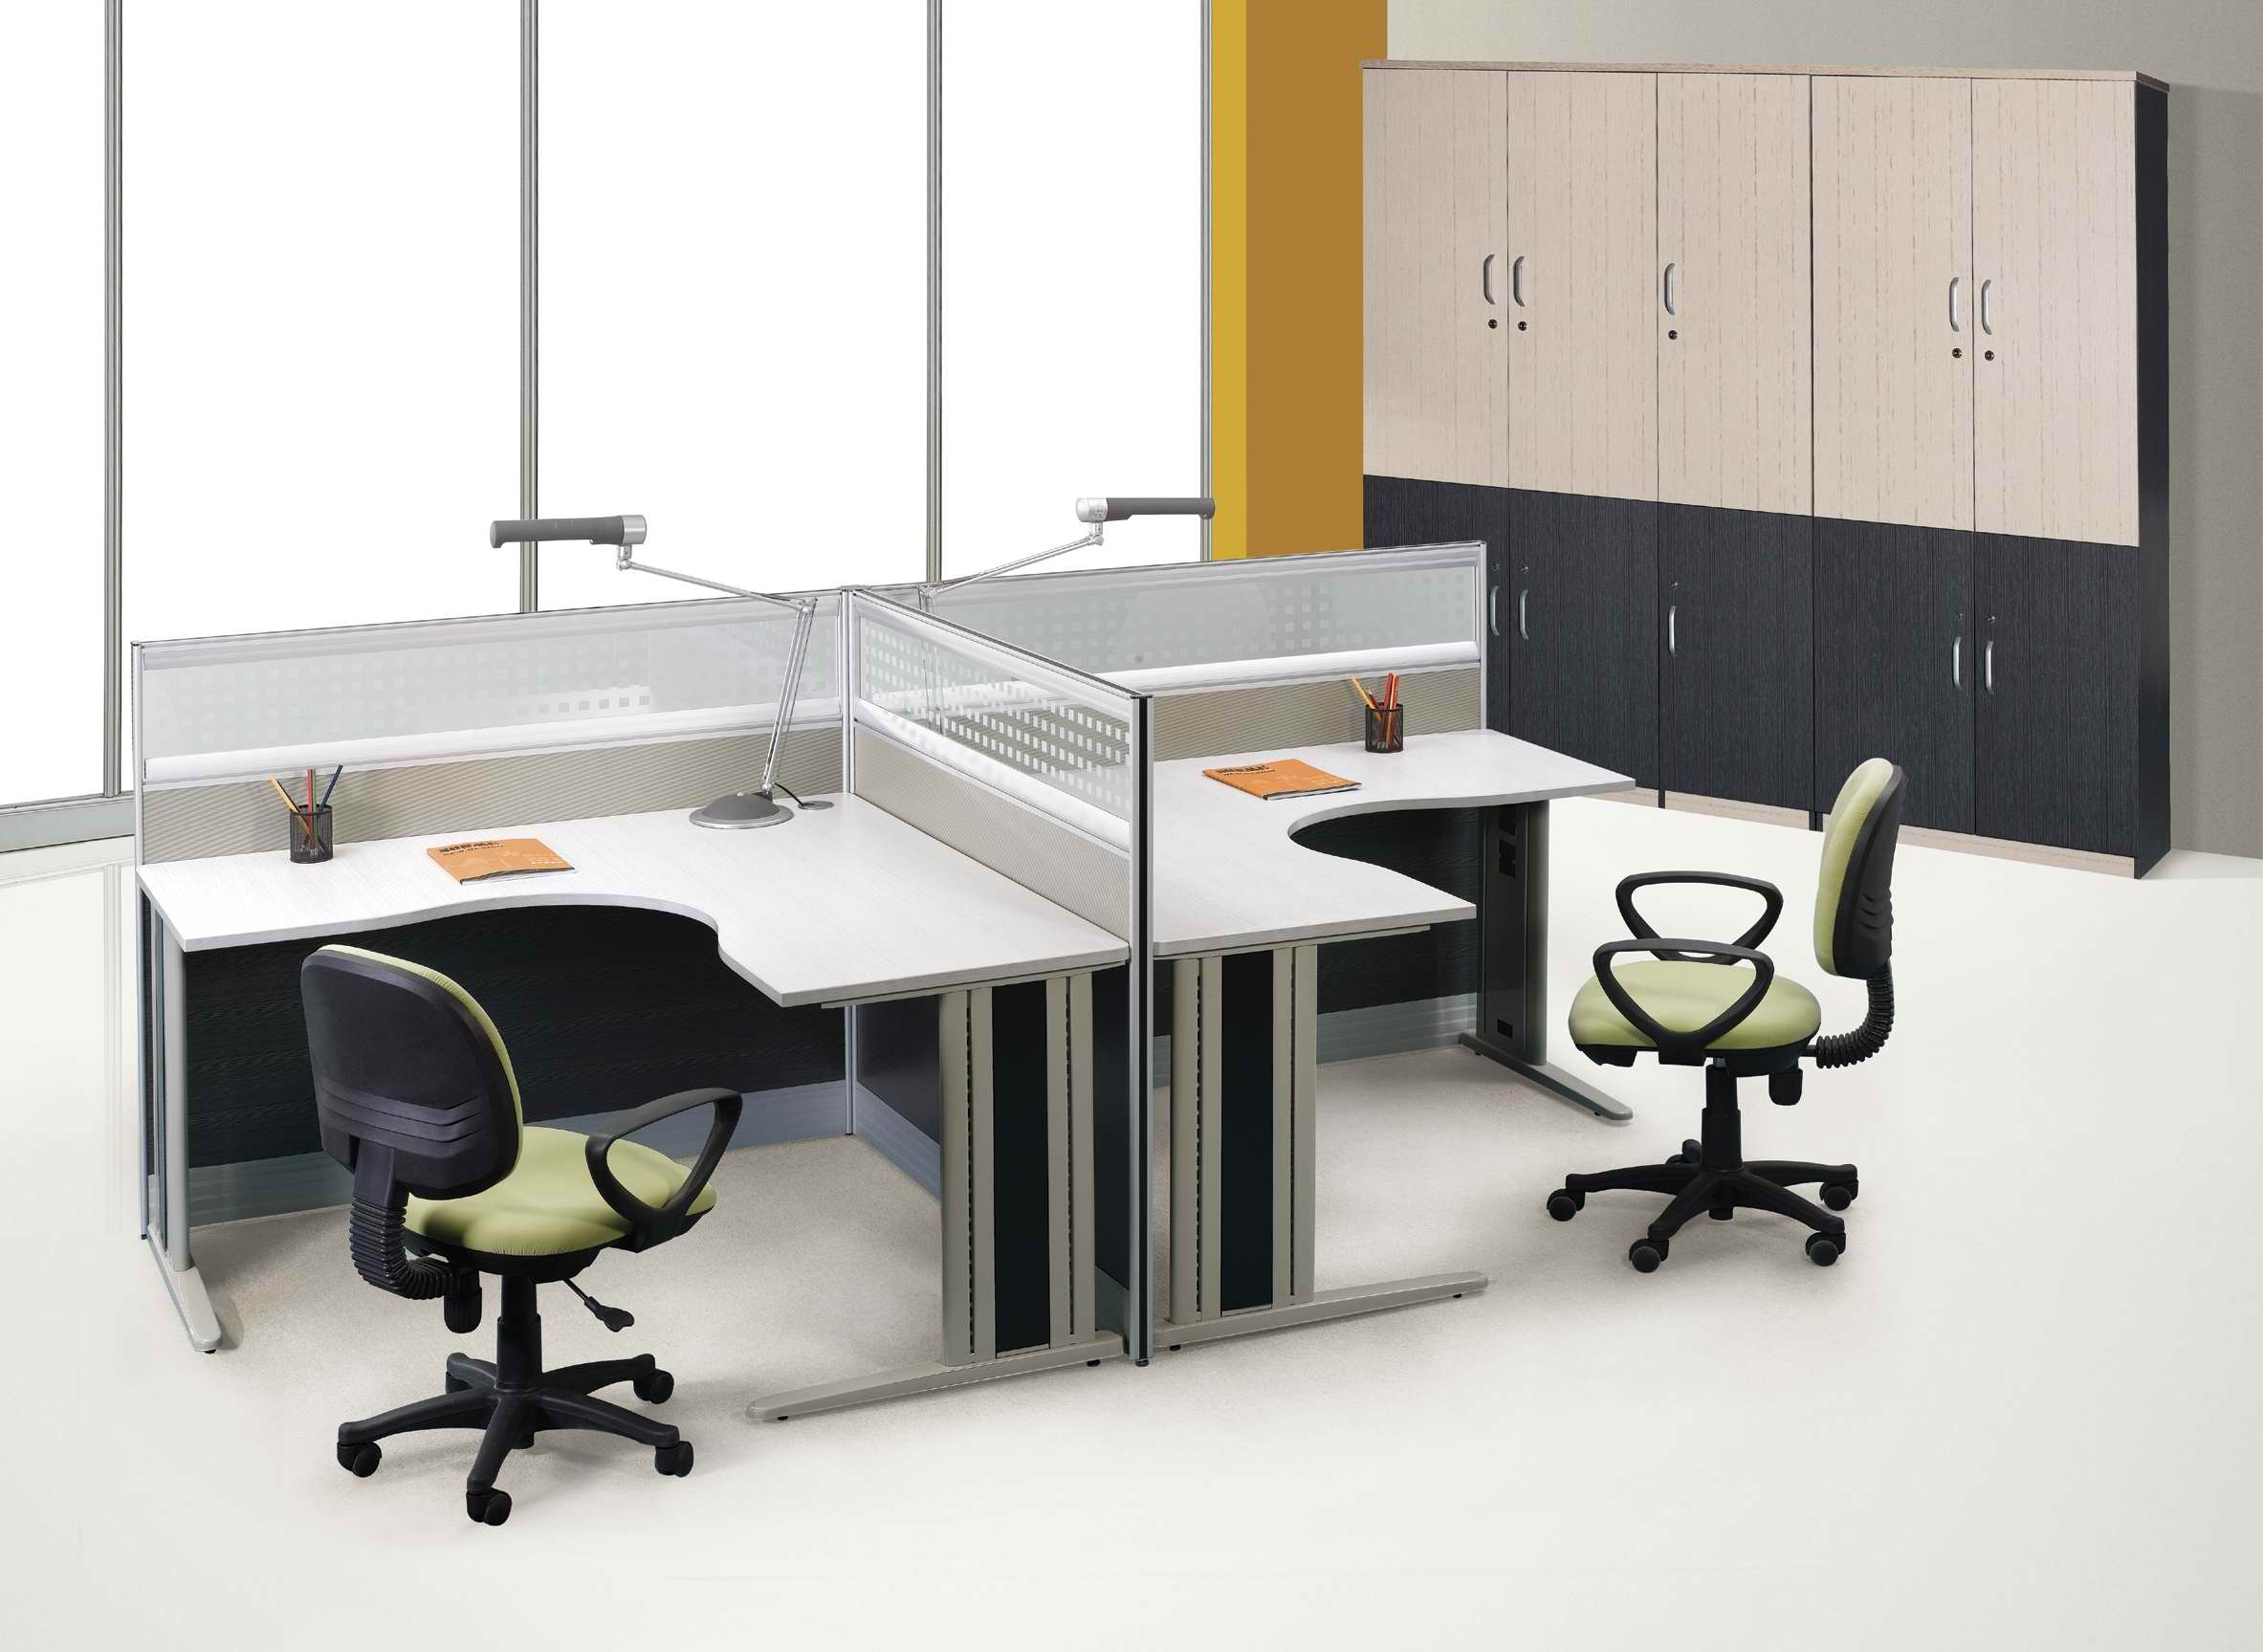 Room Interior Design Office Furniture